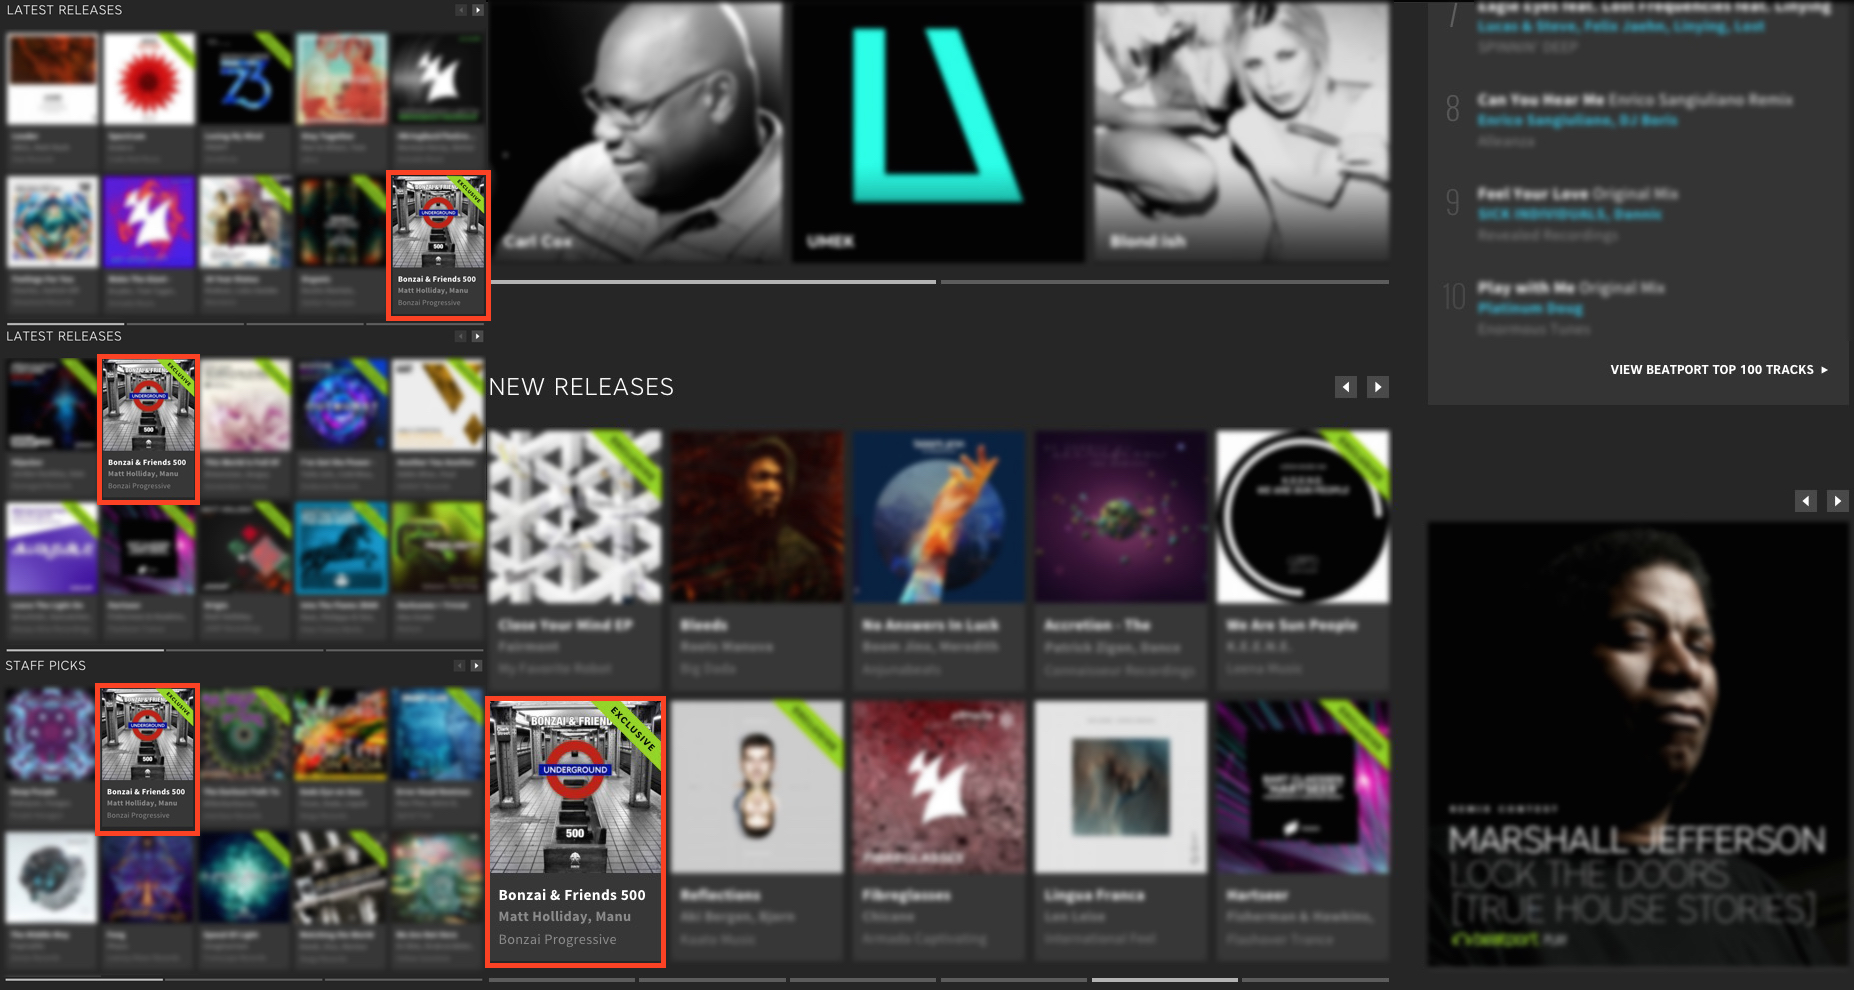 BONZAI & FRIENDS 500 FEATURED BY BEATPORT